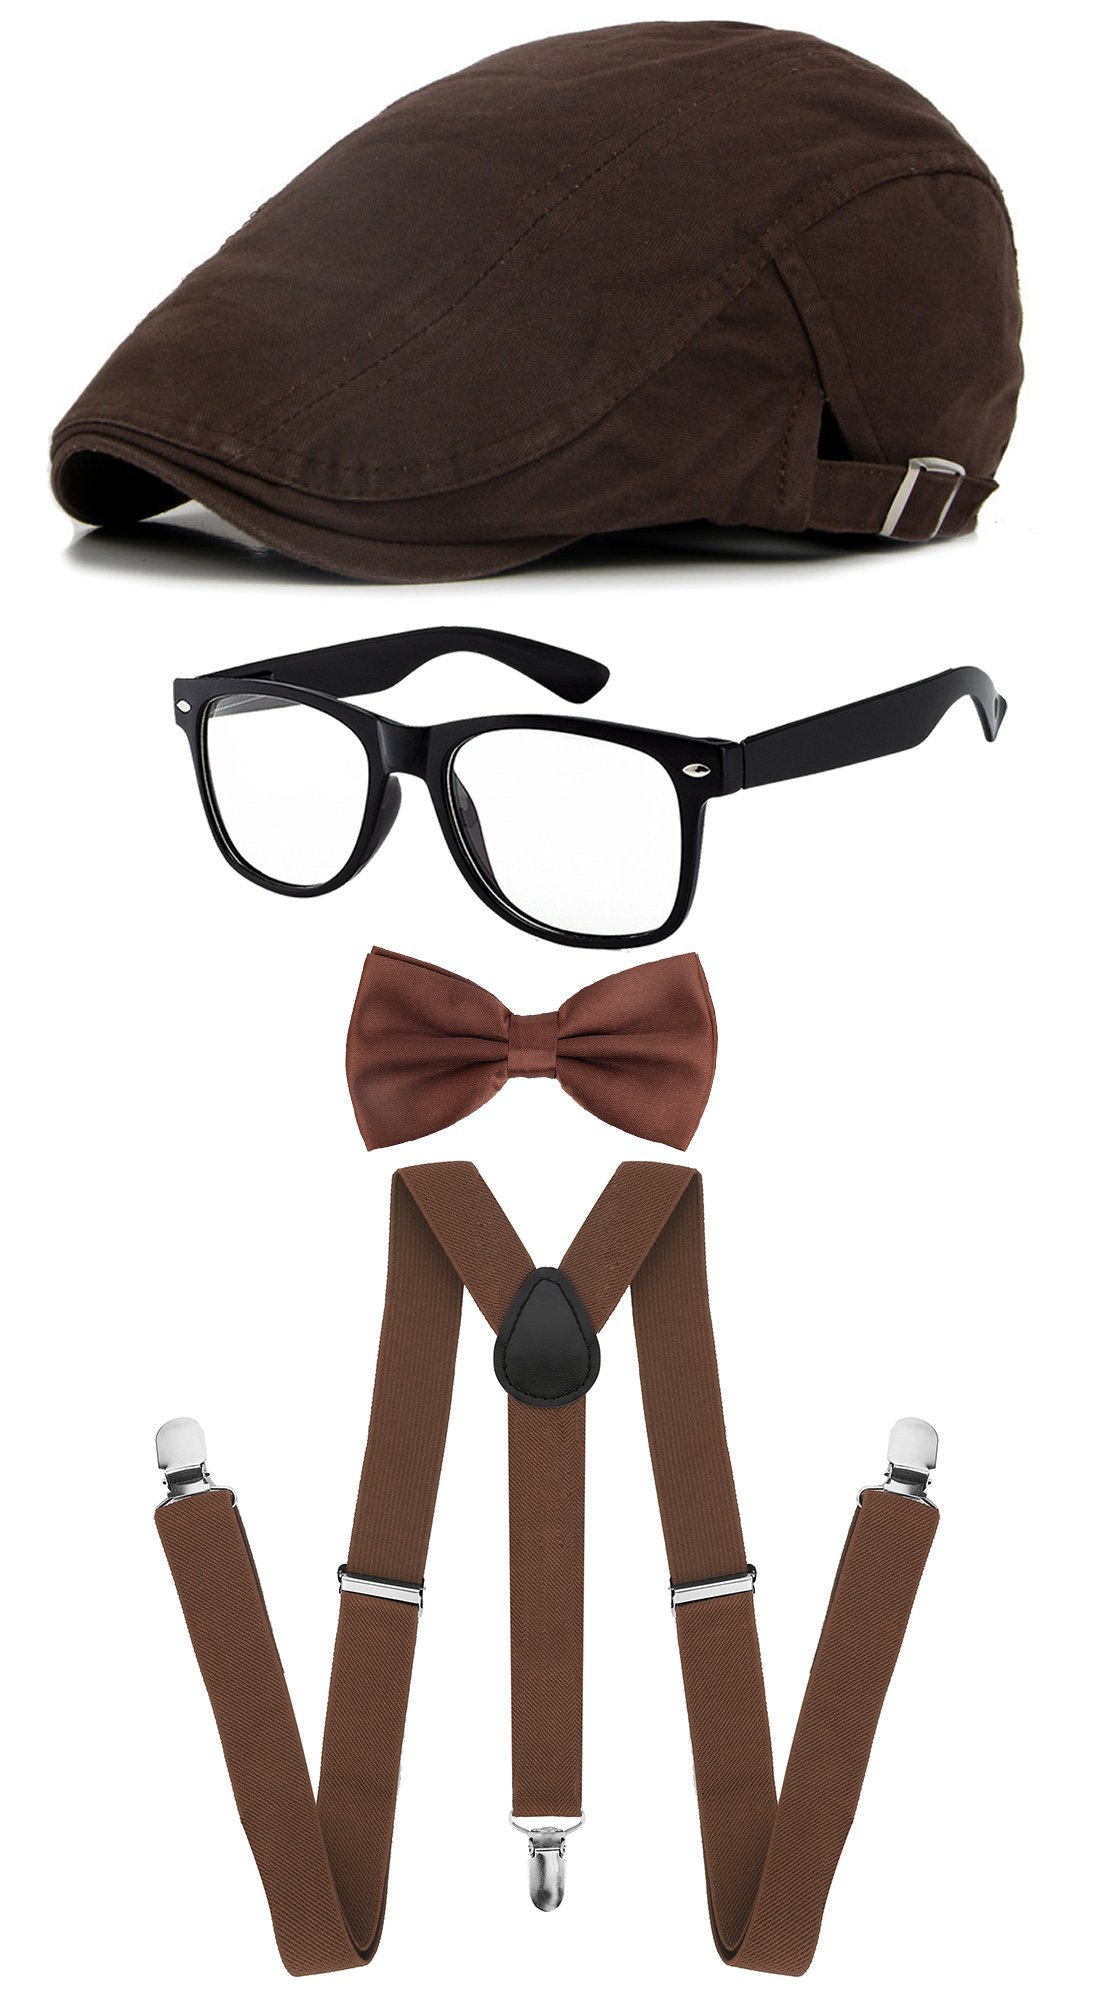 Classic Gatsby Newsboy Ivy Hat,Suspenders Y-Back Trouser Braces,Pre Tied Bow Tie,Non Prescription Glasses (Knitting - Dark Coffee)